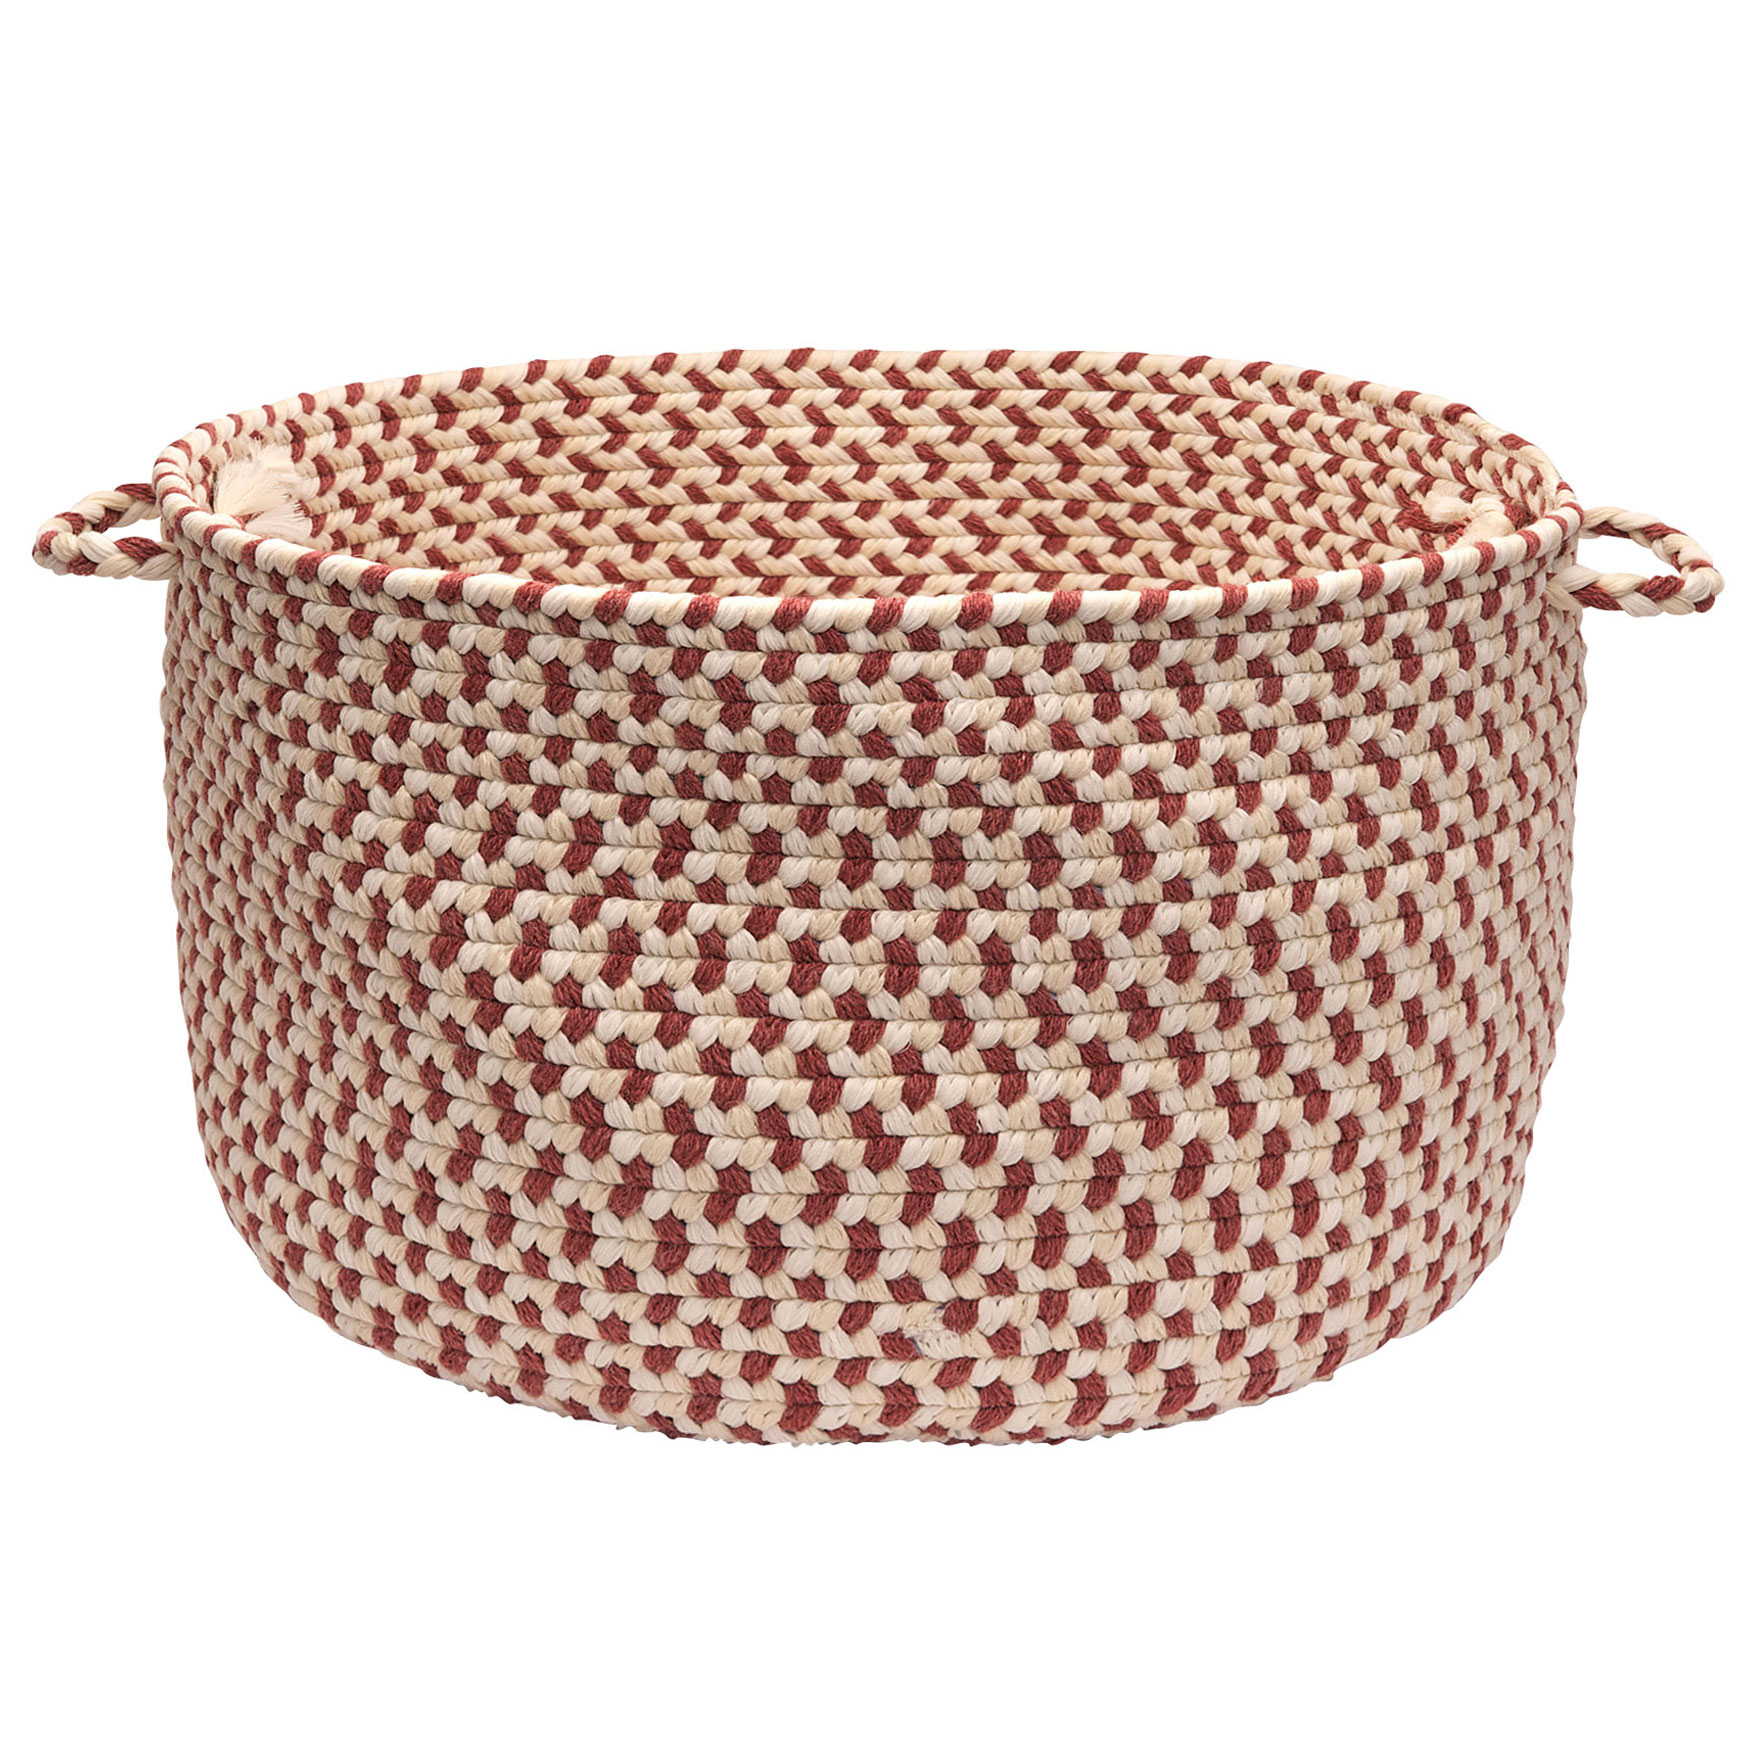 Stone Harbor Red Sapphire Basket,